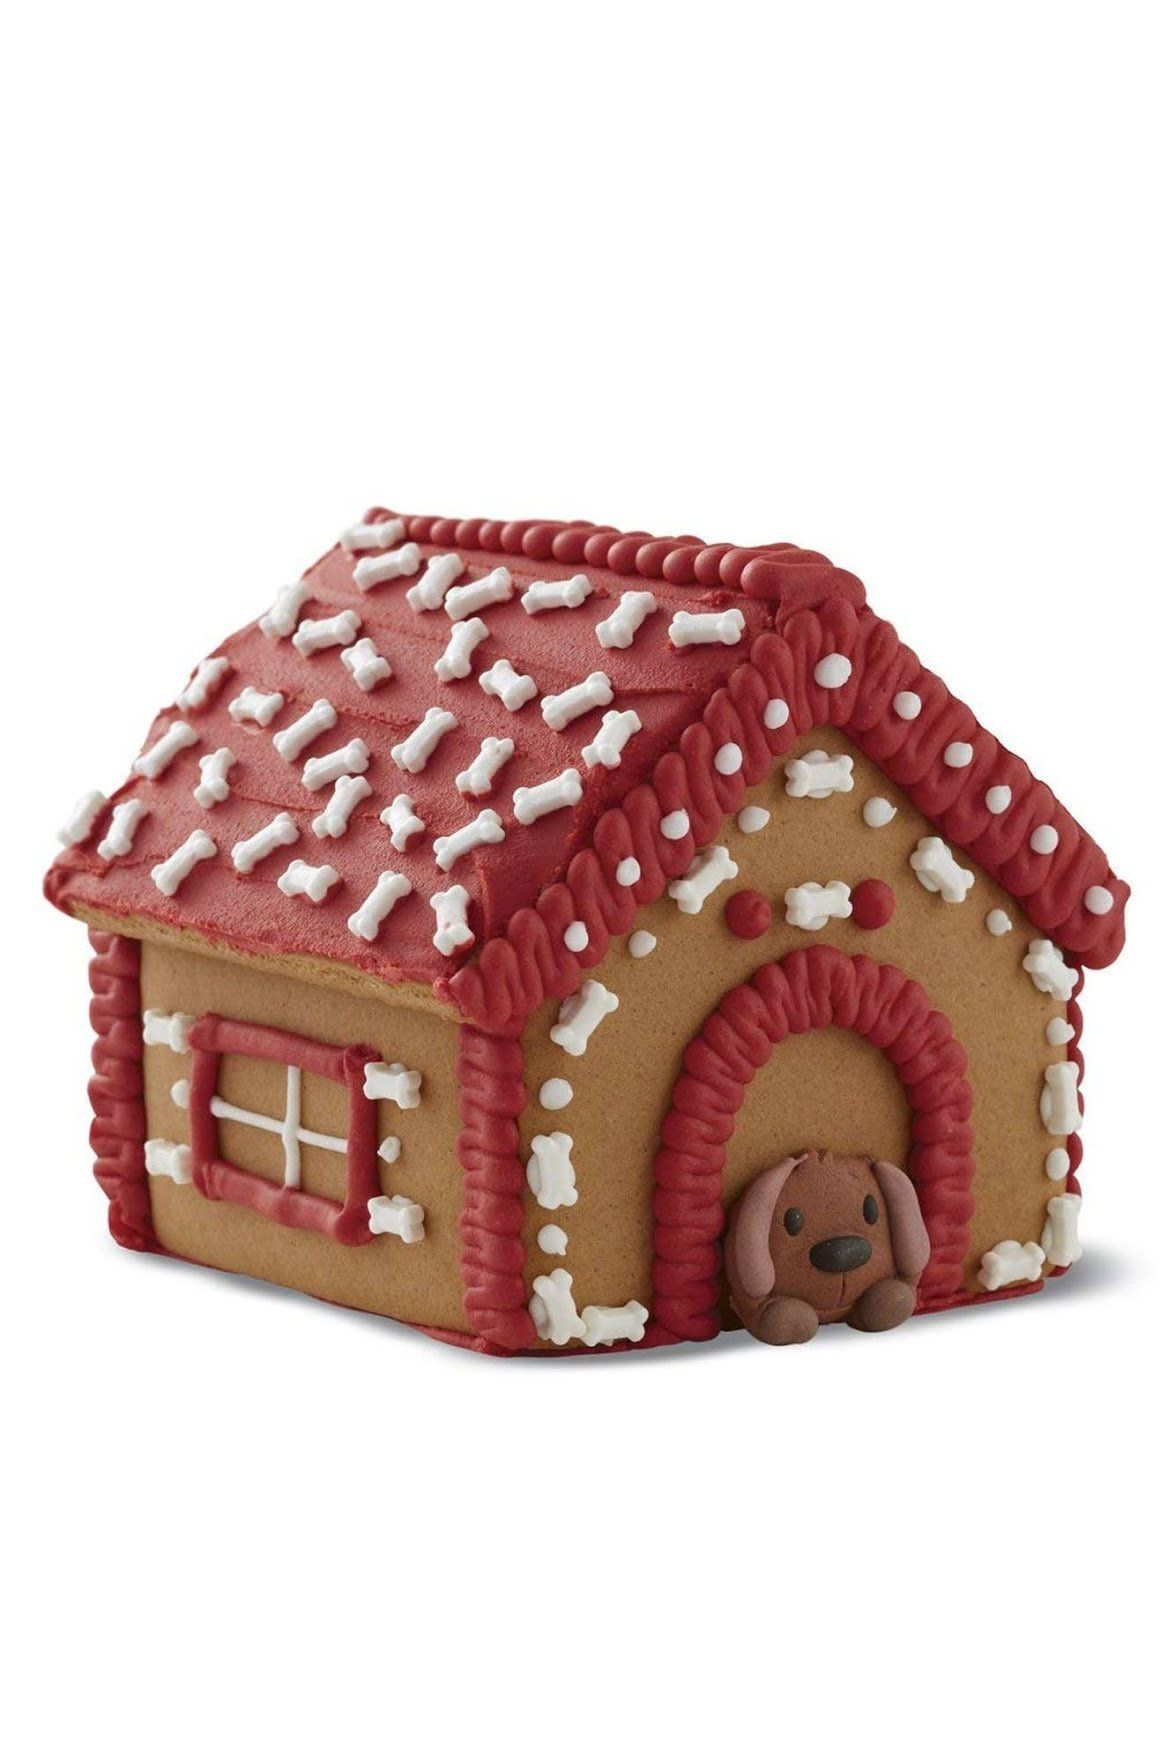 40 Cutest Gingerbread Houses to Make Over the Holidays